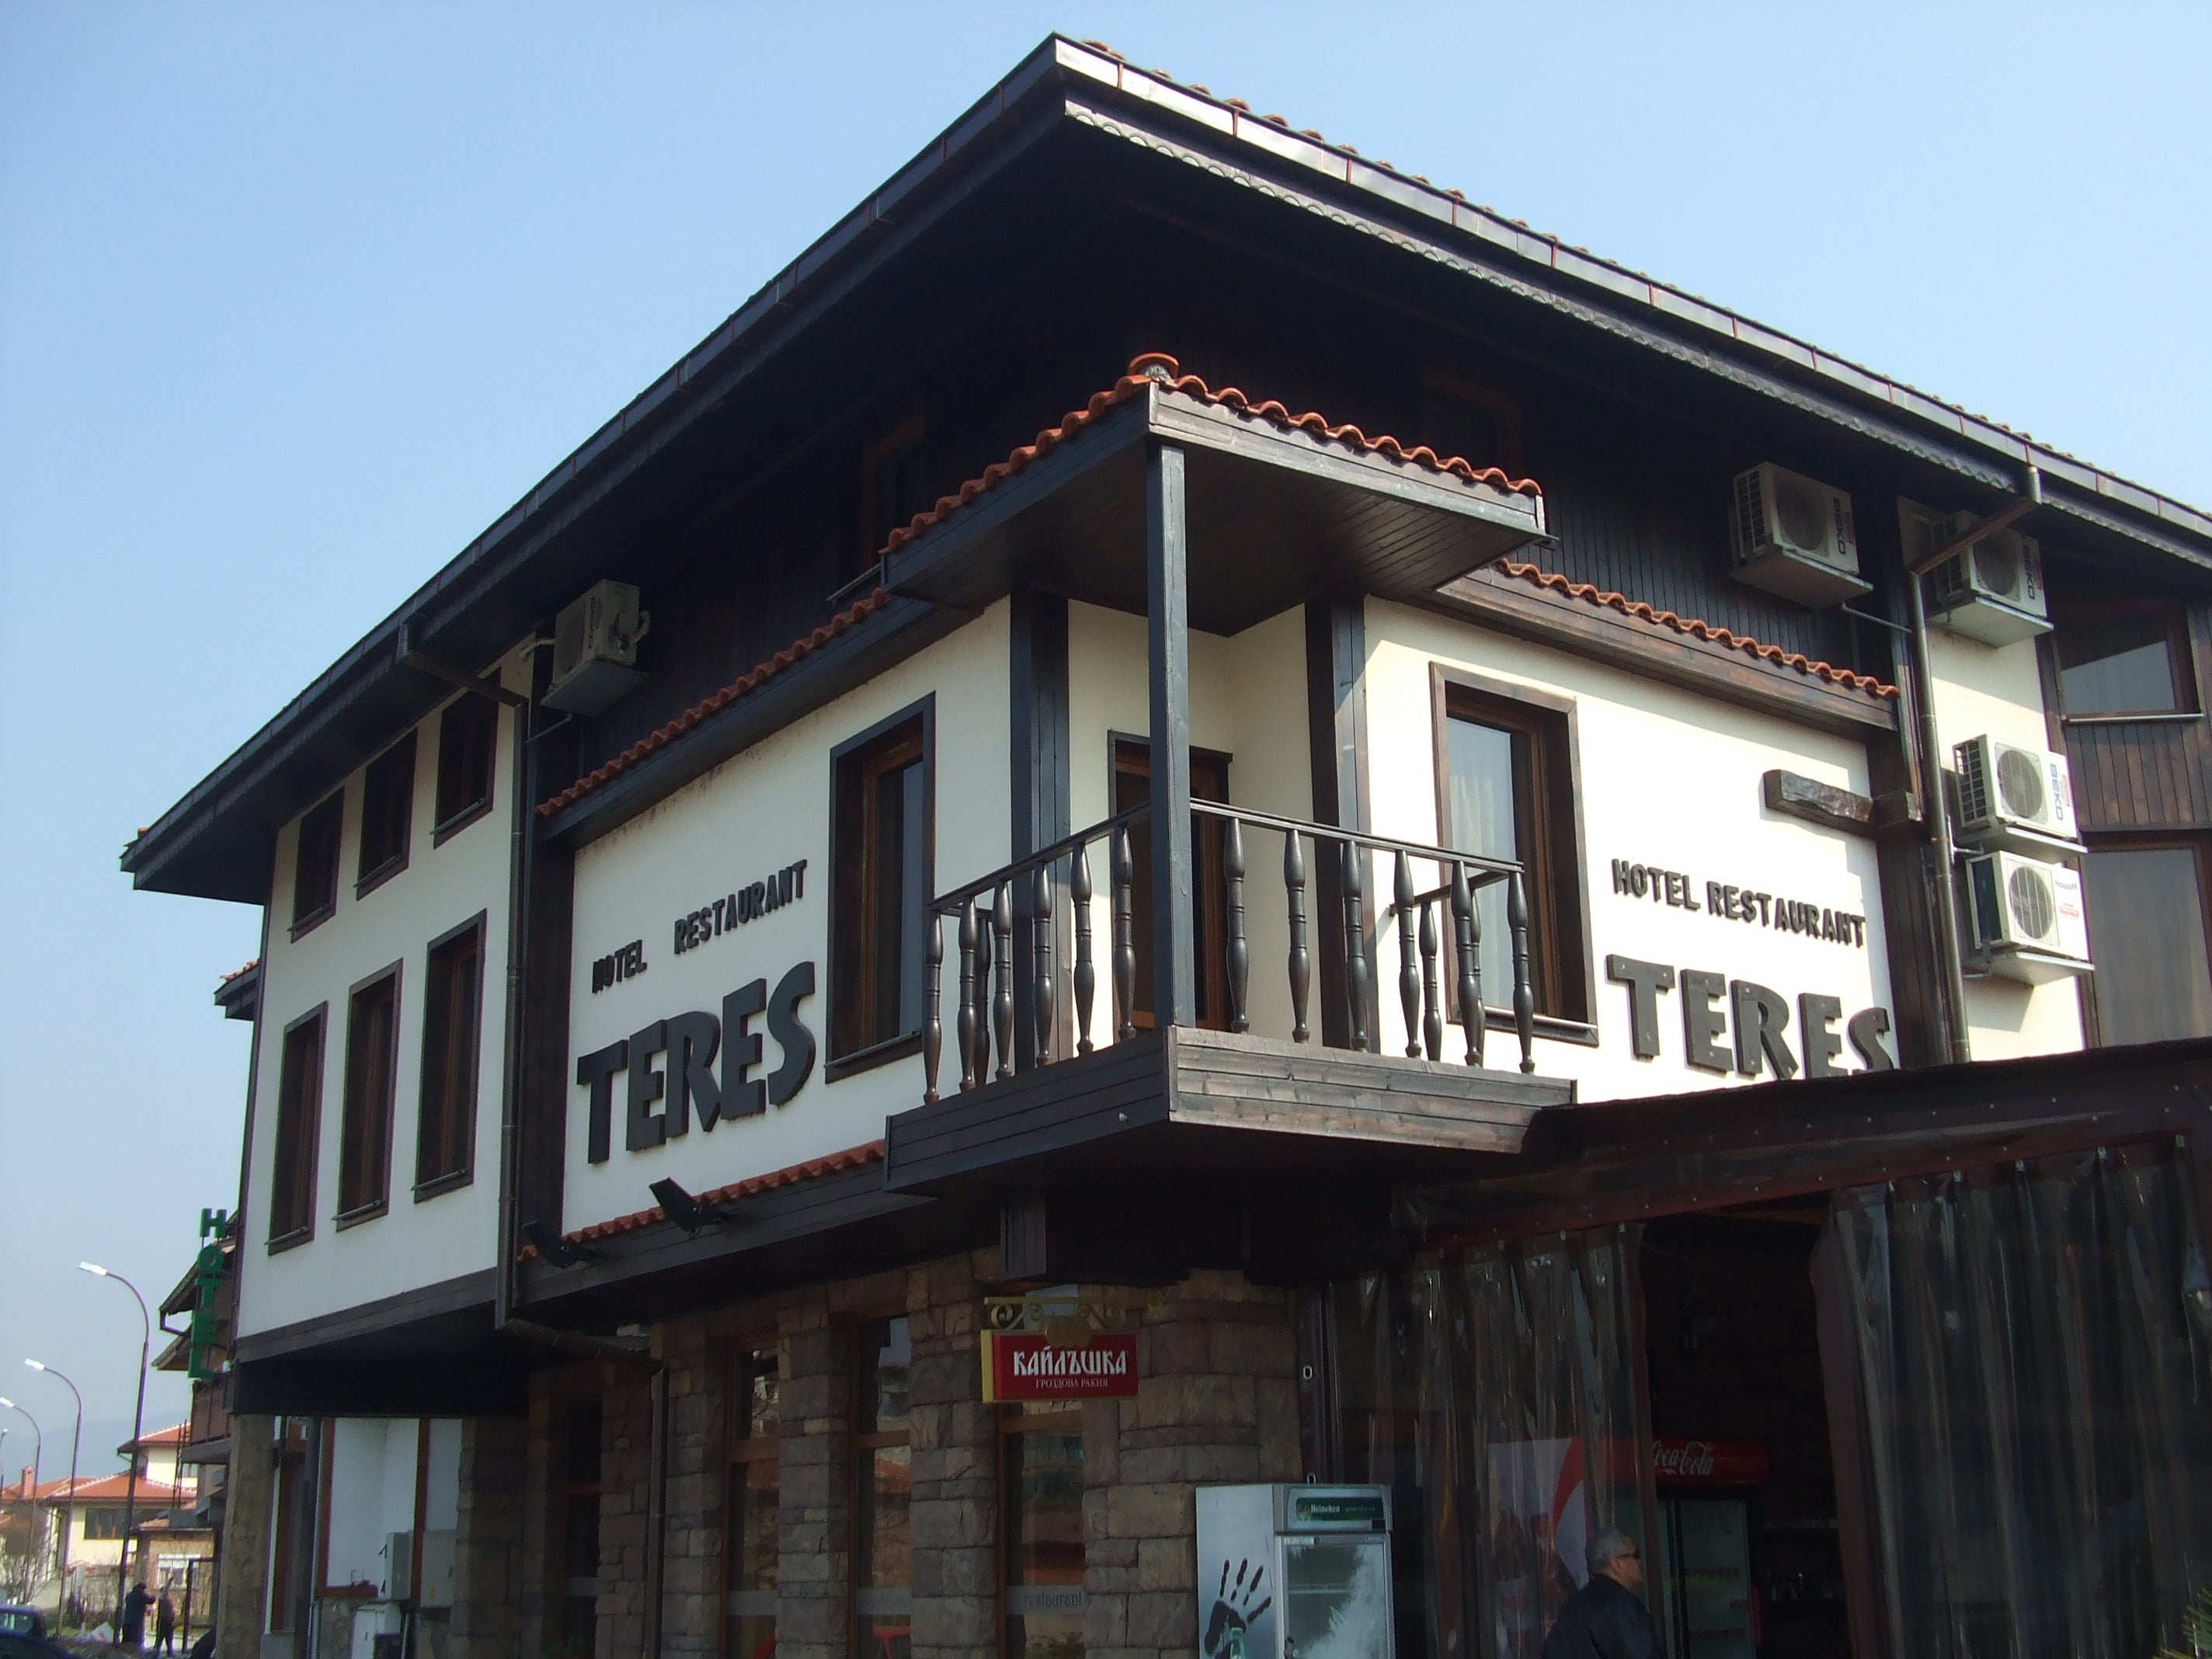 Hotel teres